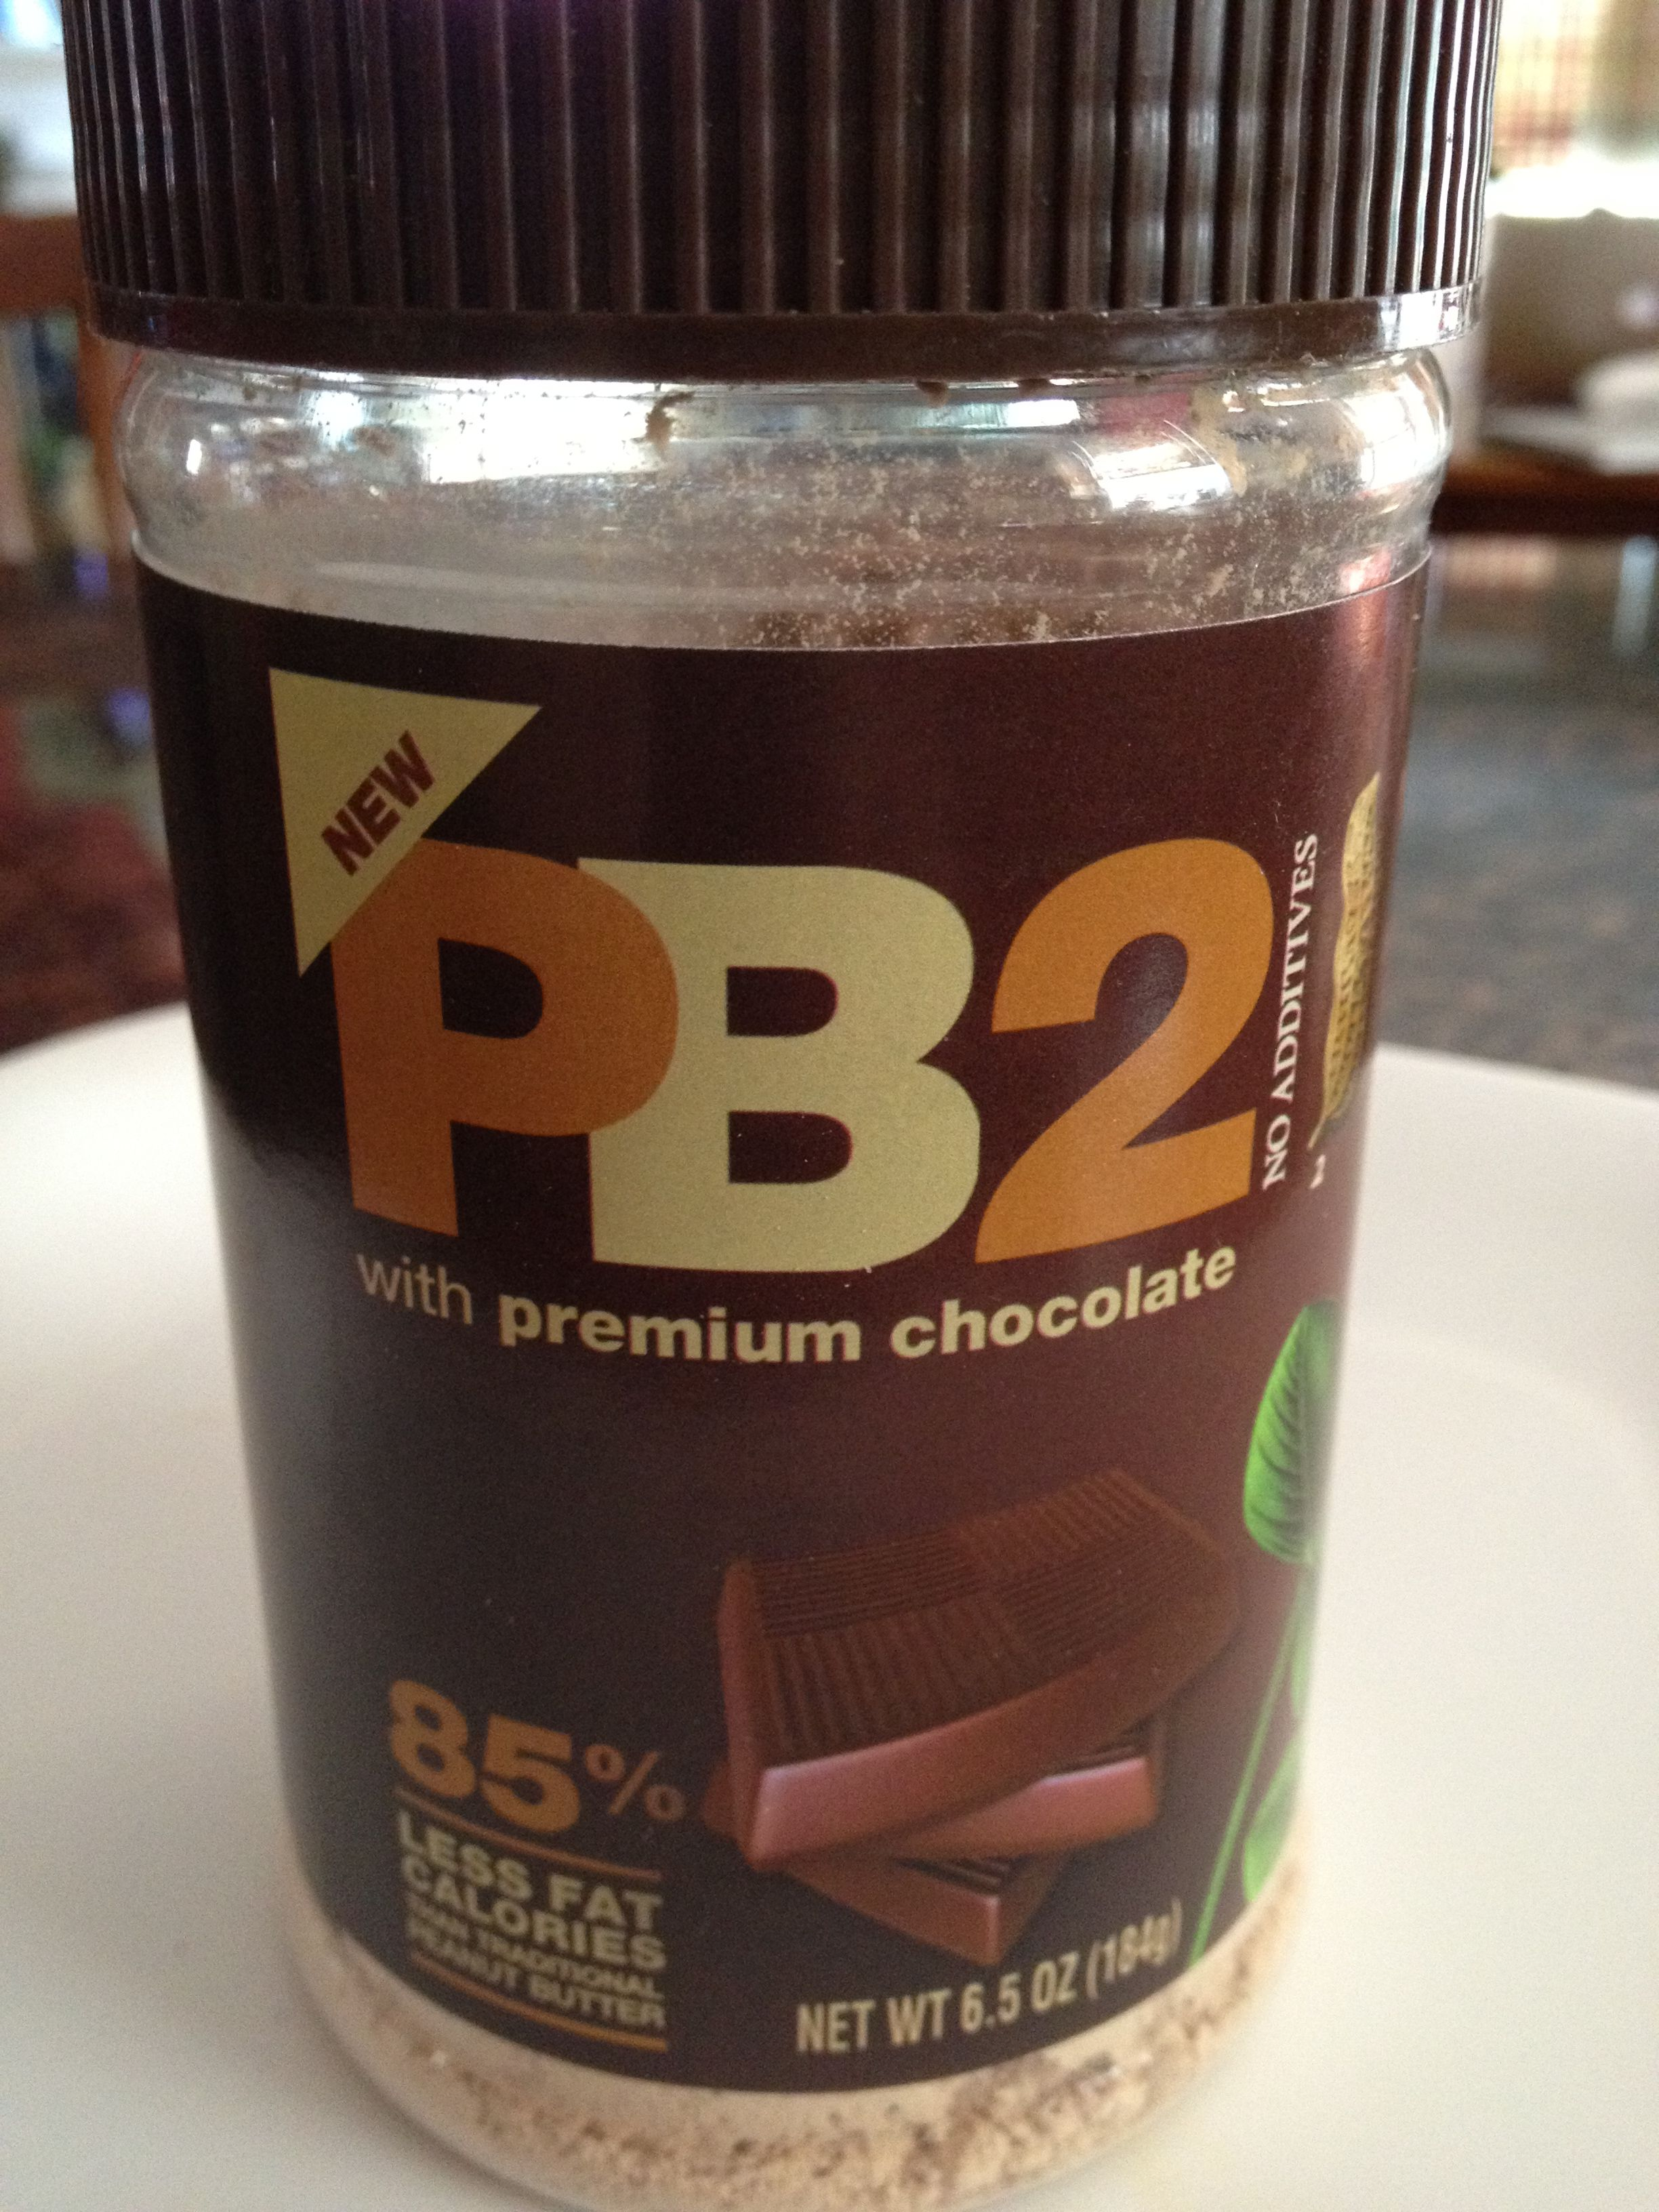 My whole family is loving chocolate pb2 its a powdered